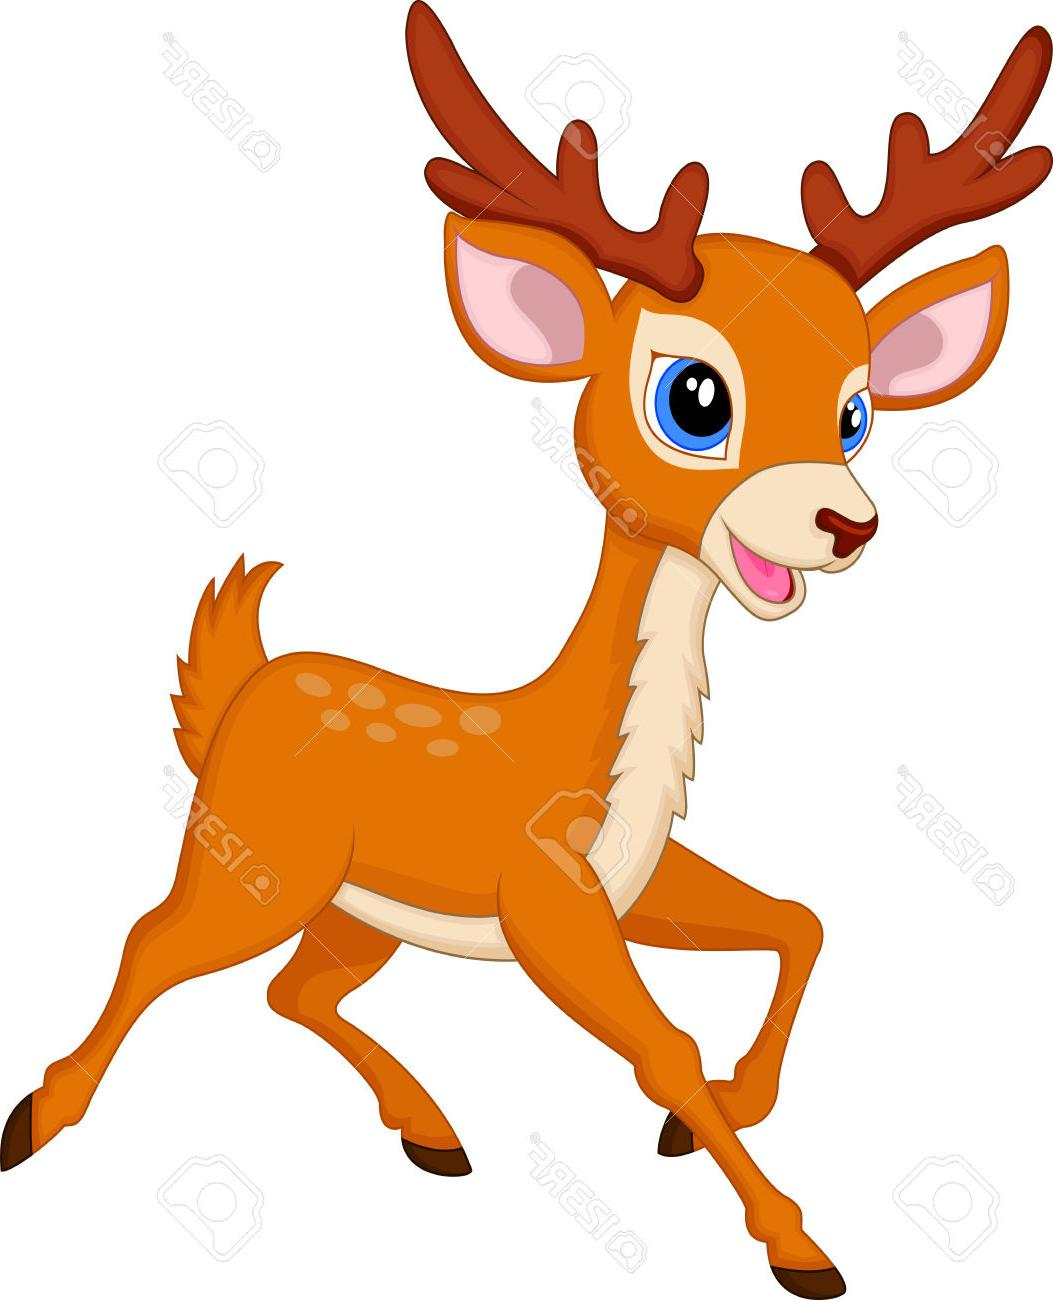 graphic transparent library Baby free download best. Cute deer clipart